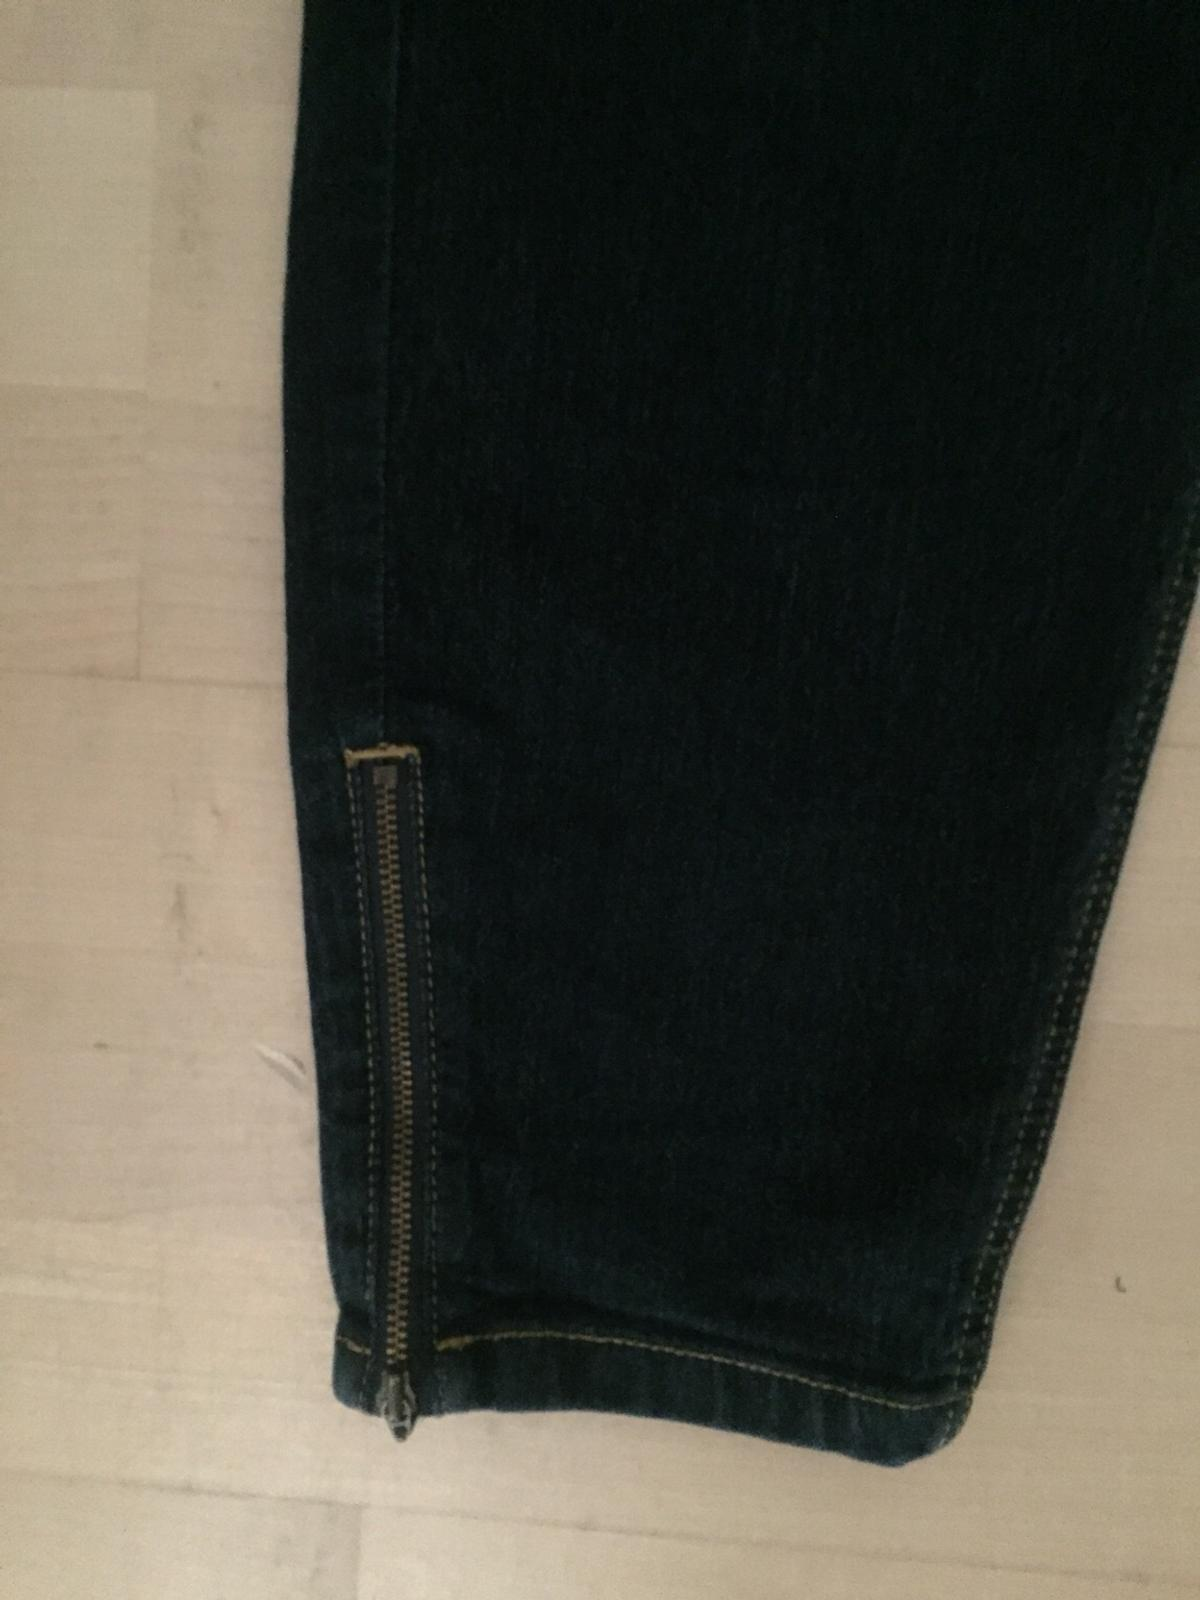 Dunkle Jeans 44 c&a